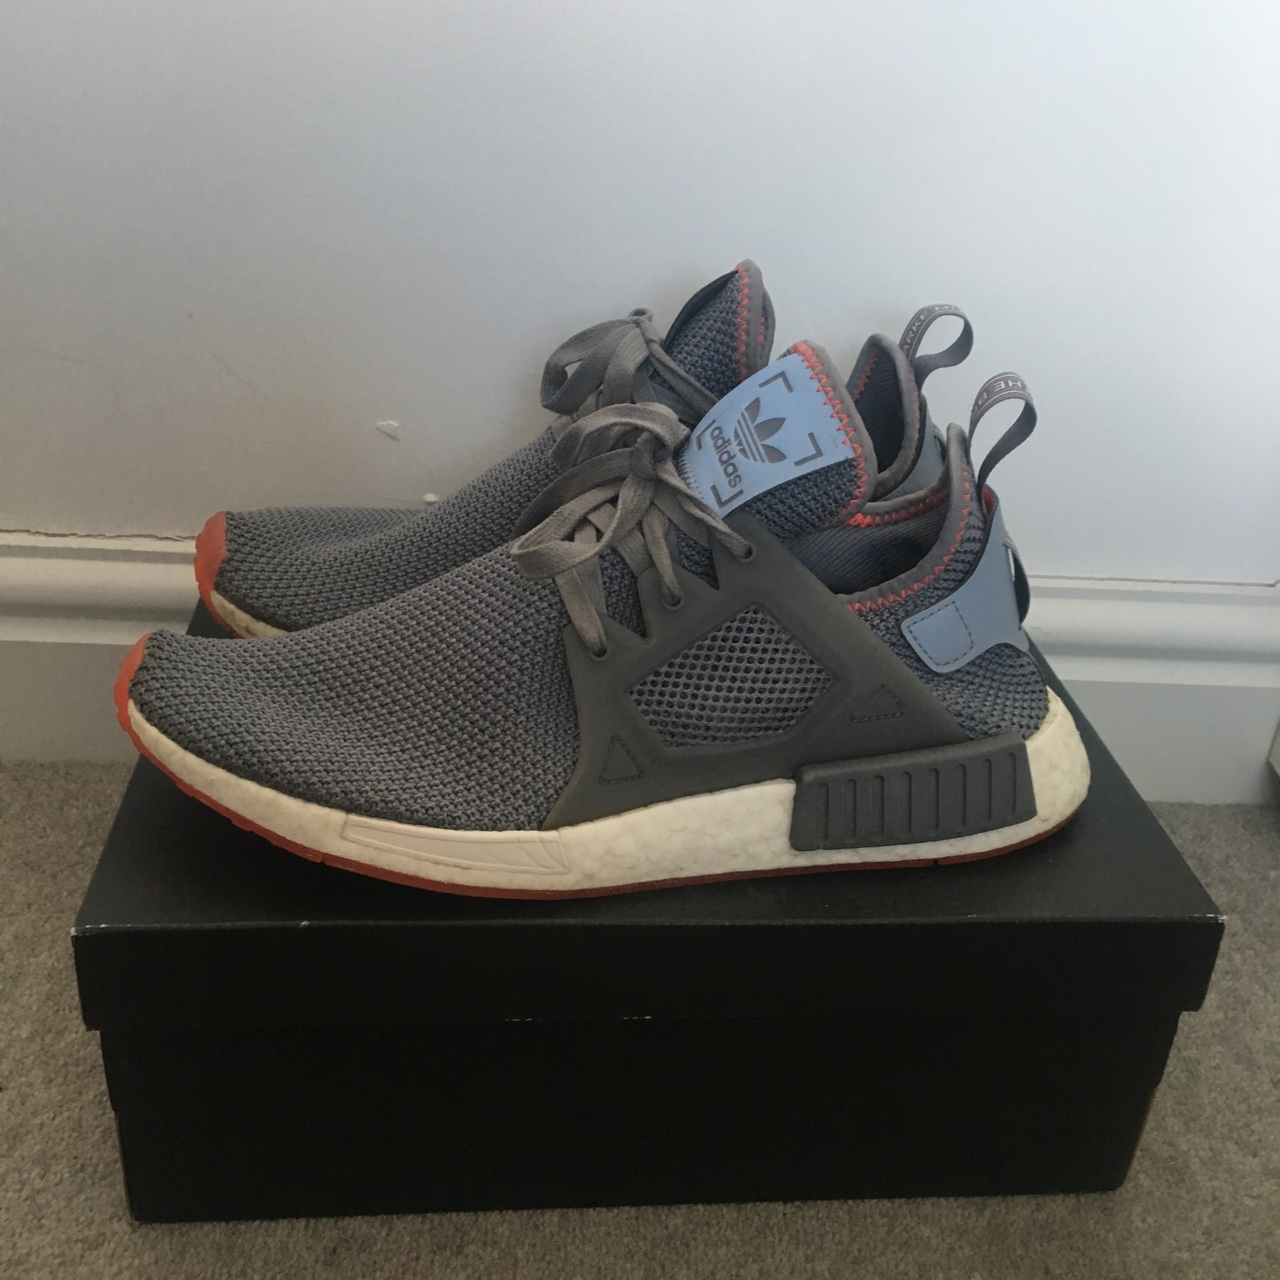 Adidas Nmd Xr1 Grey And Red Uk 10 7 10 Condition Depop